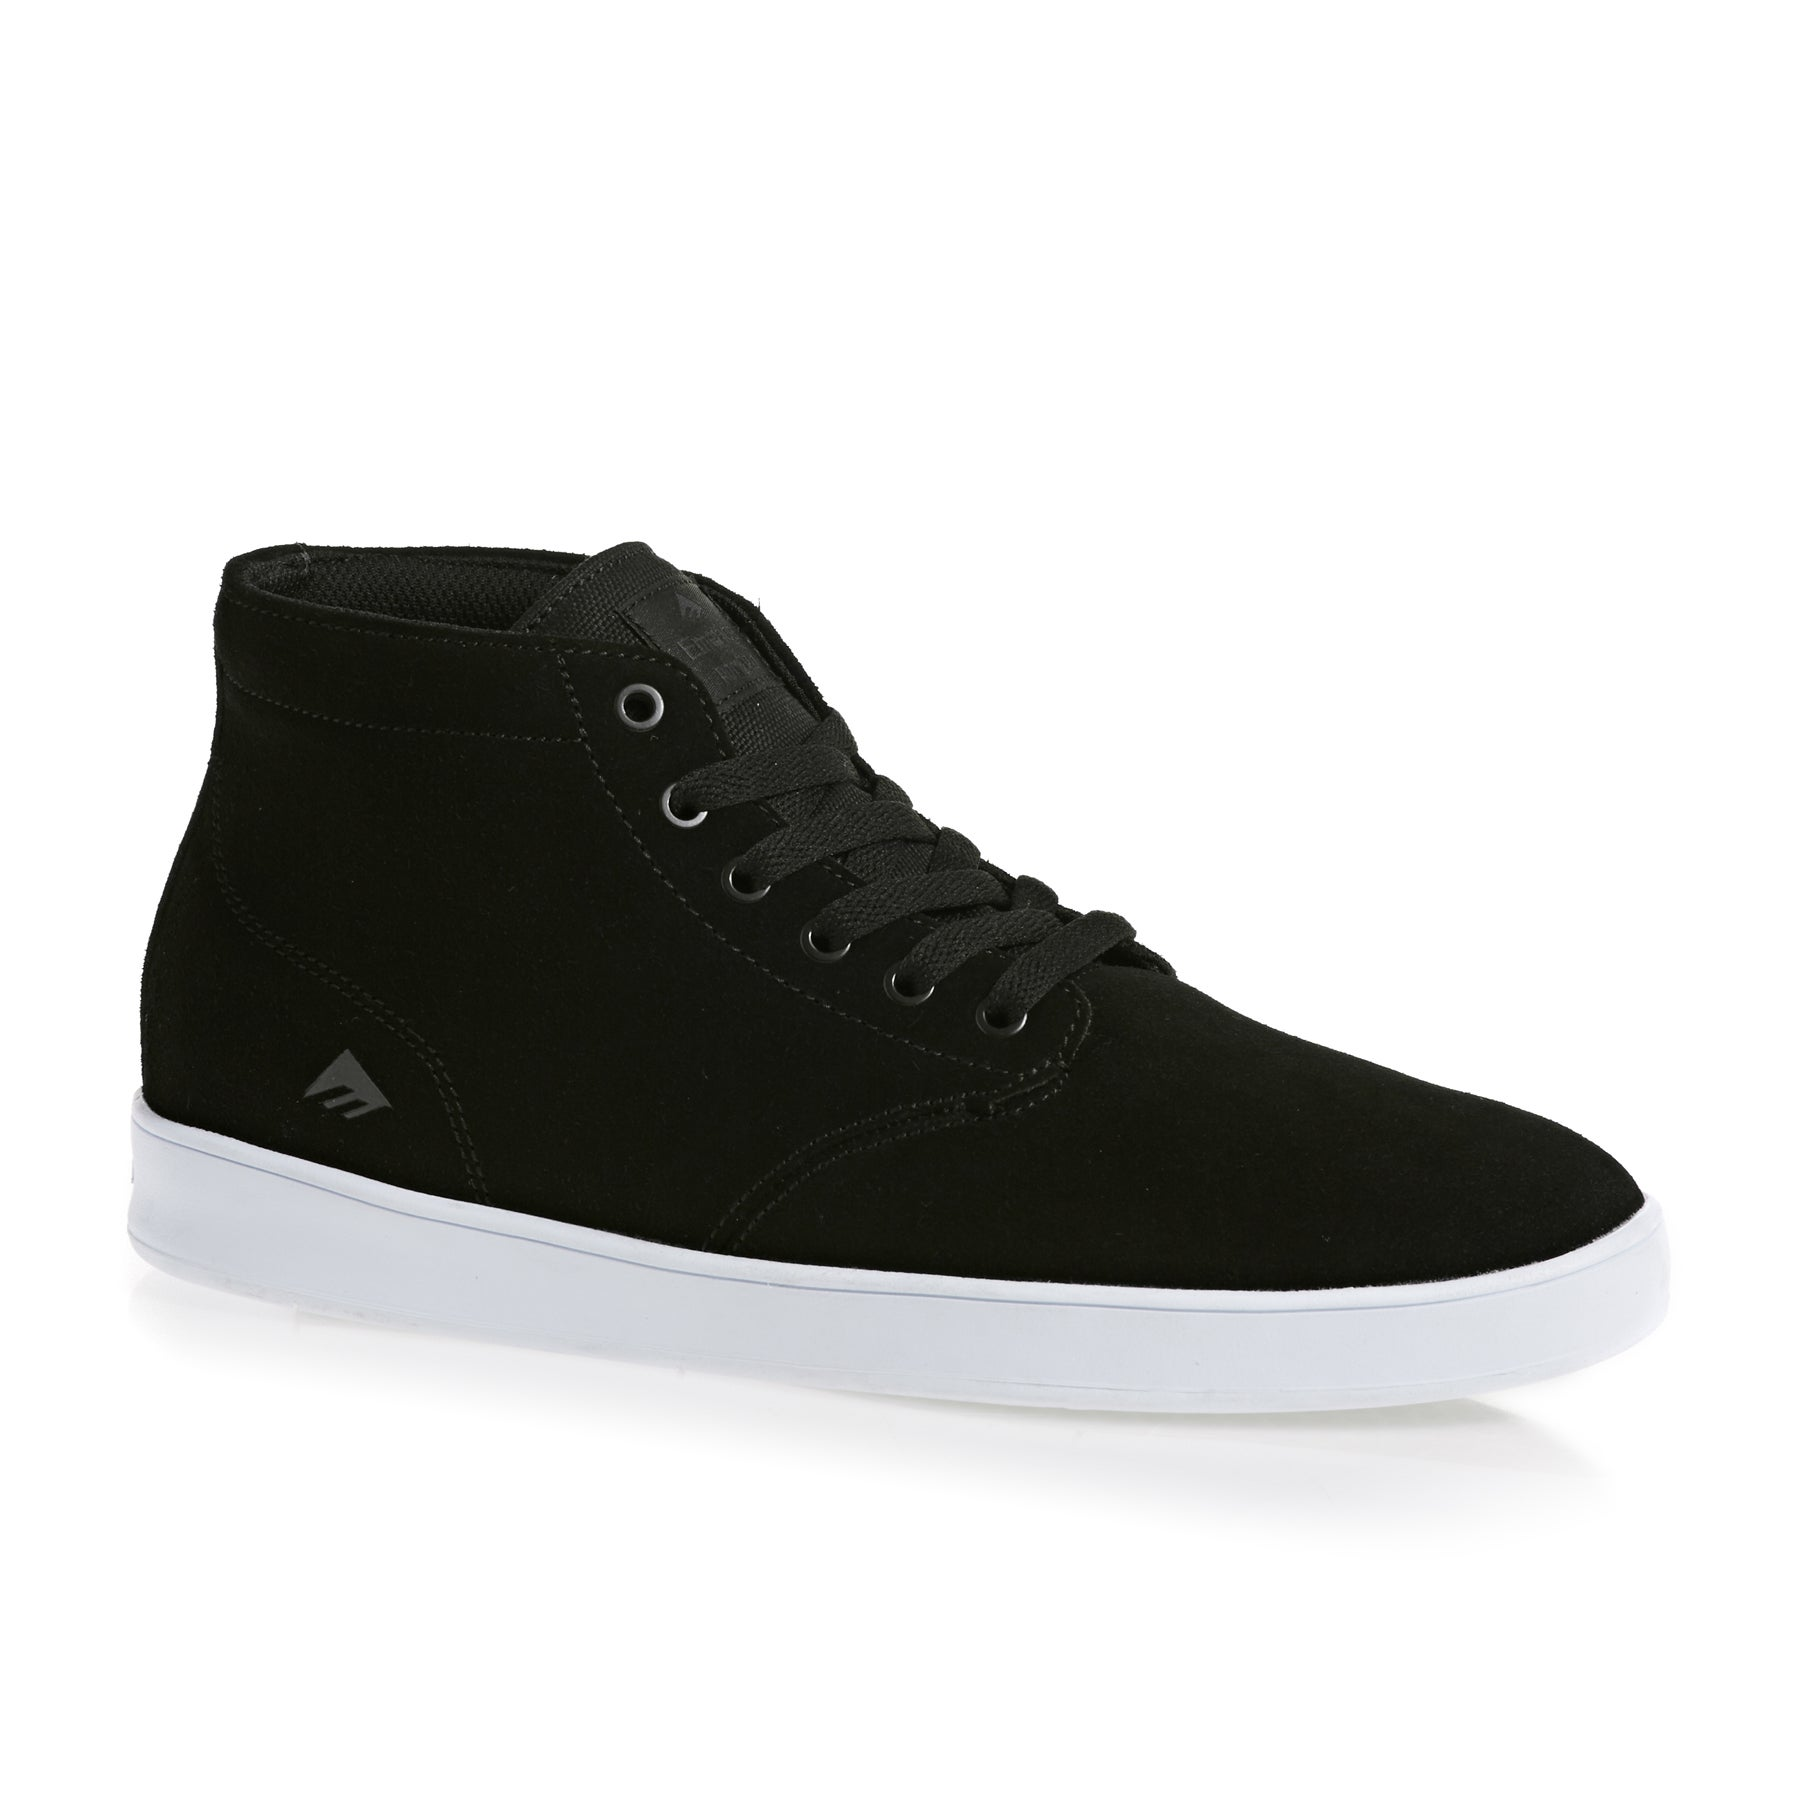 7a8fec016bb Emerica Romero Laced High Shoes available from Surfdome